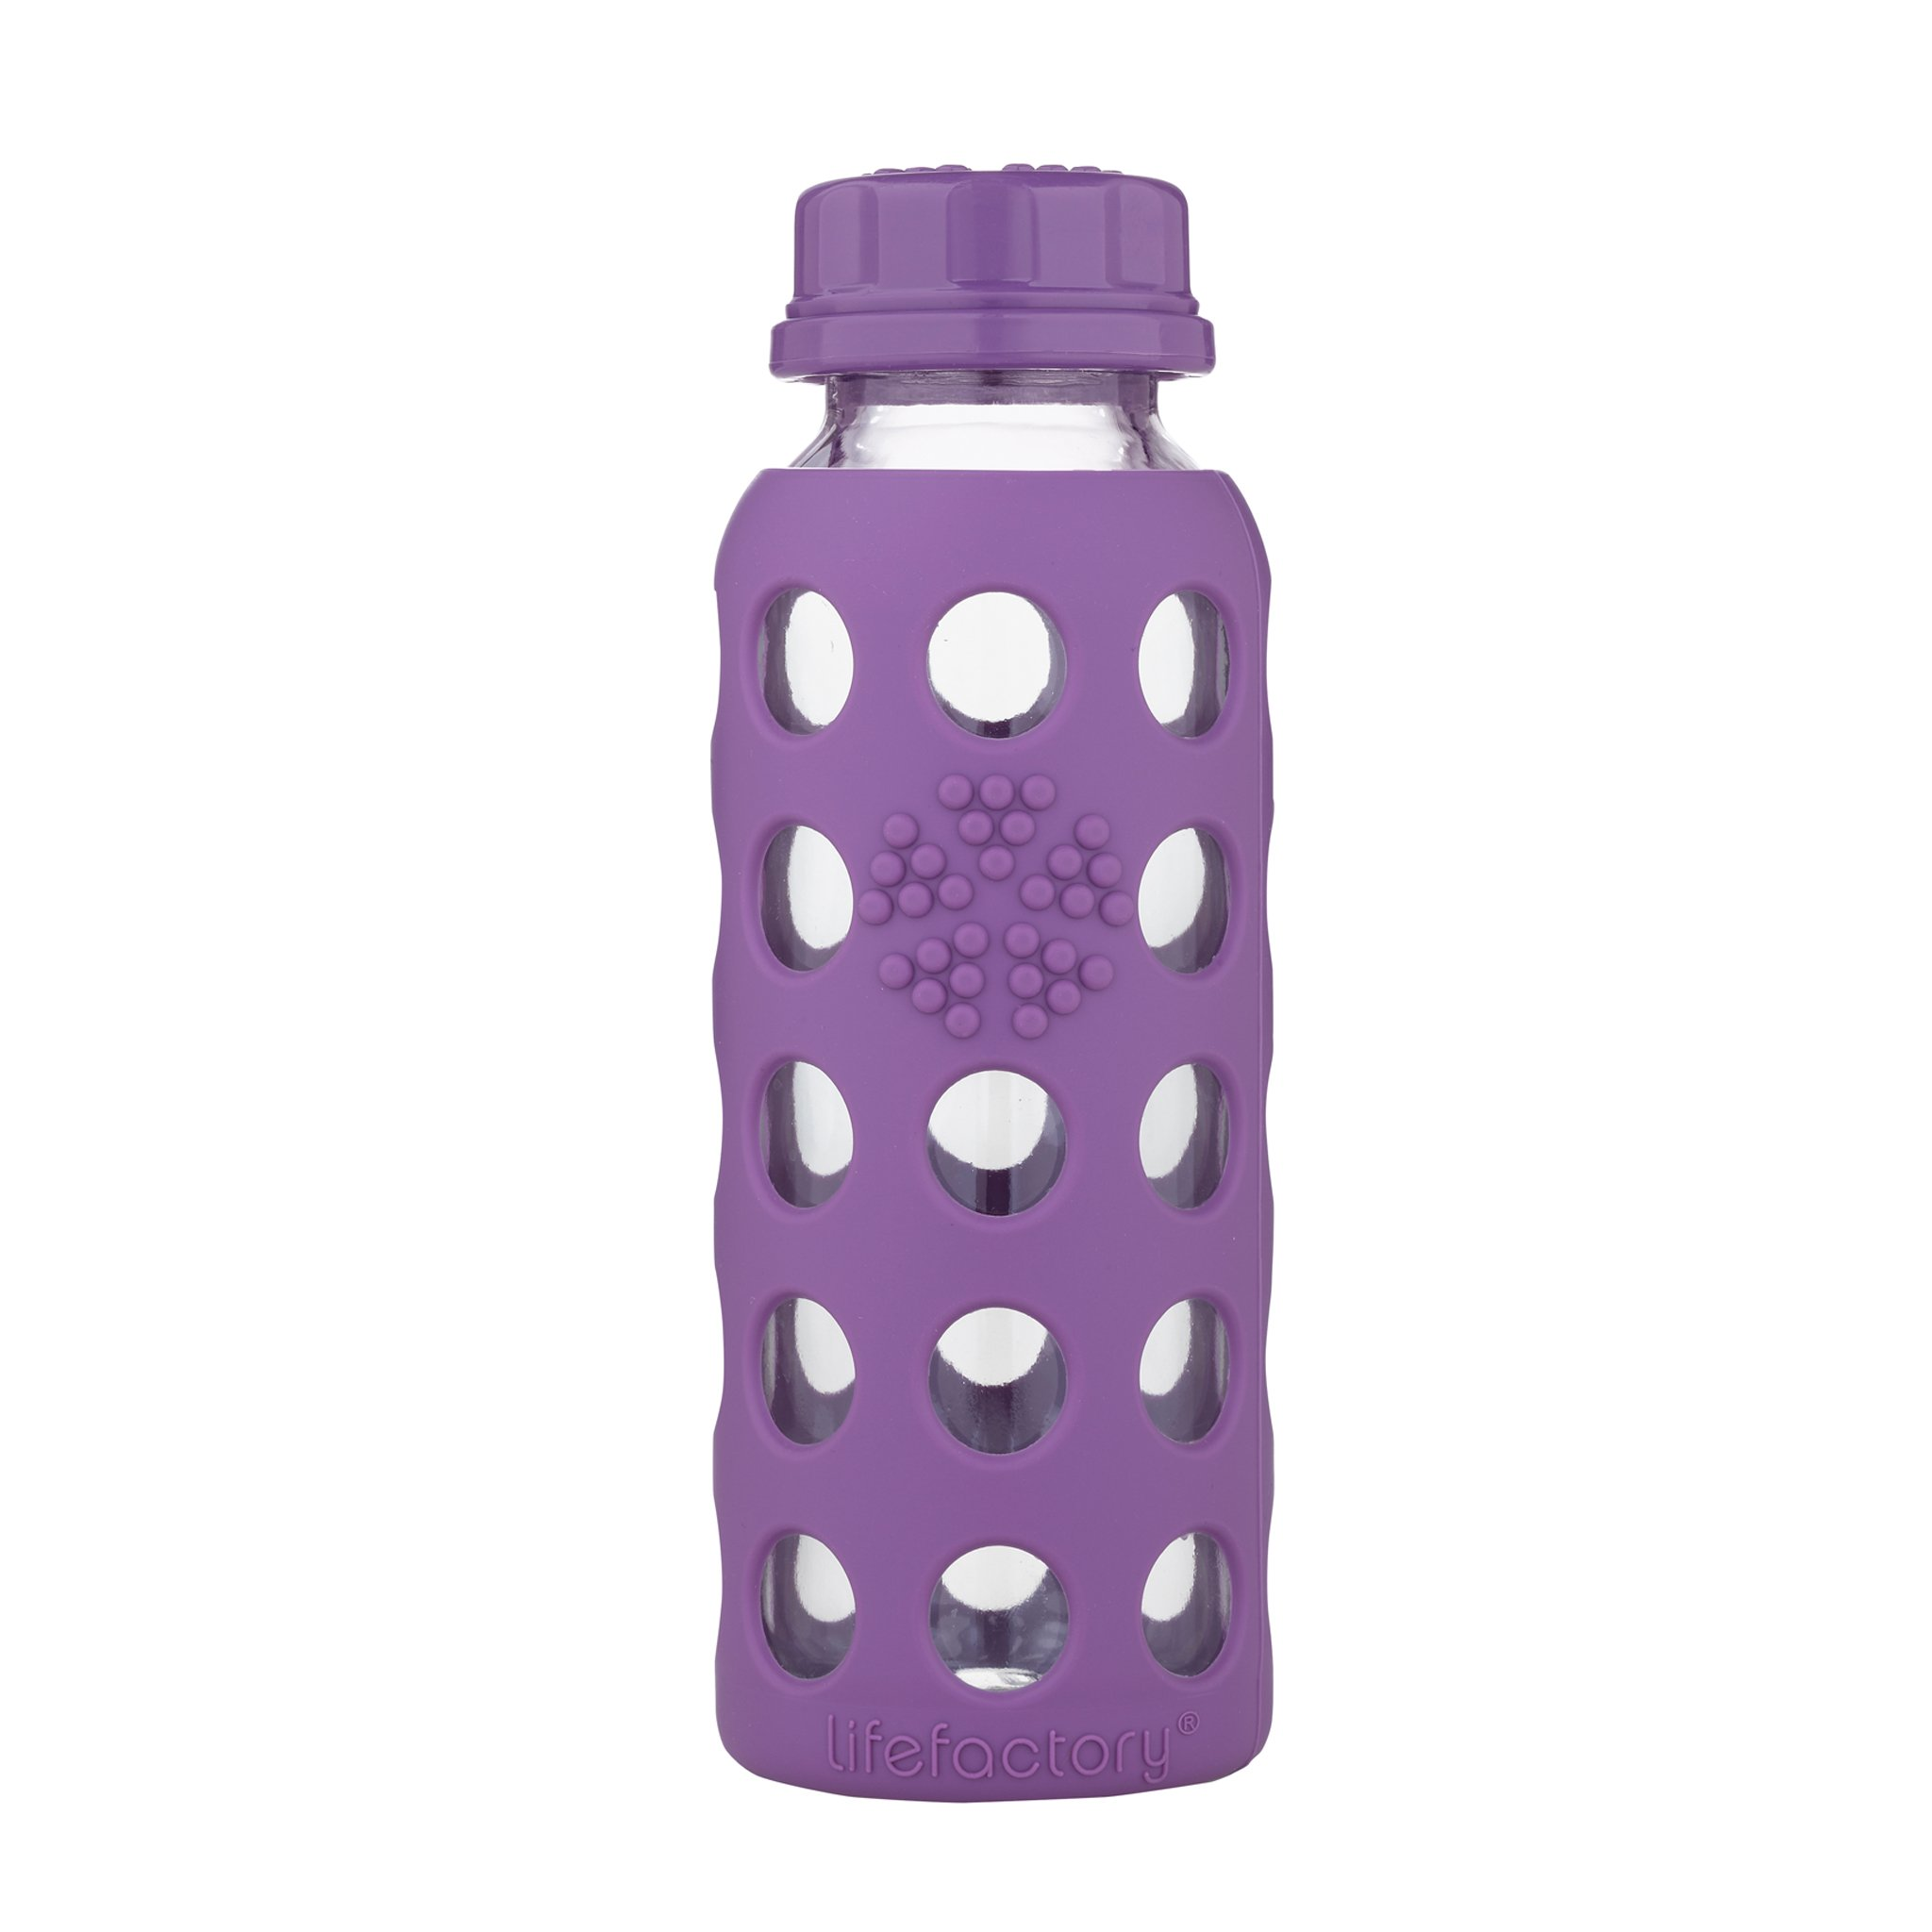 Lifefactory 9-Ounce BPA-Free Glass Water Bottle with Flat Cap and Silicone Sleeve, Grape